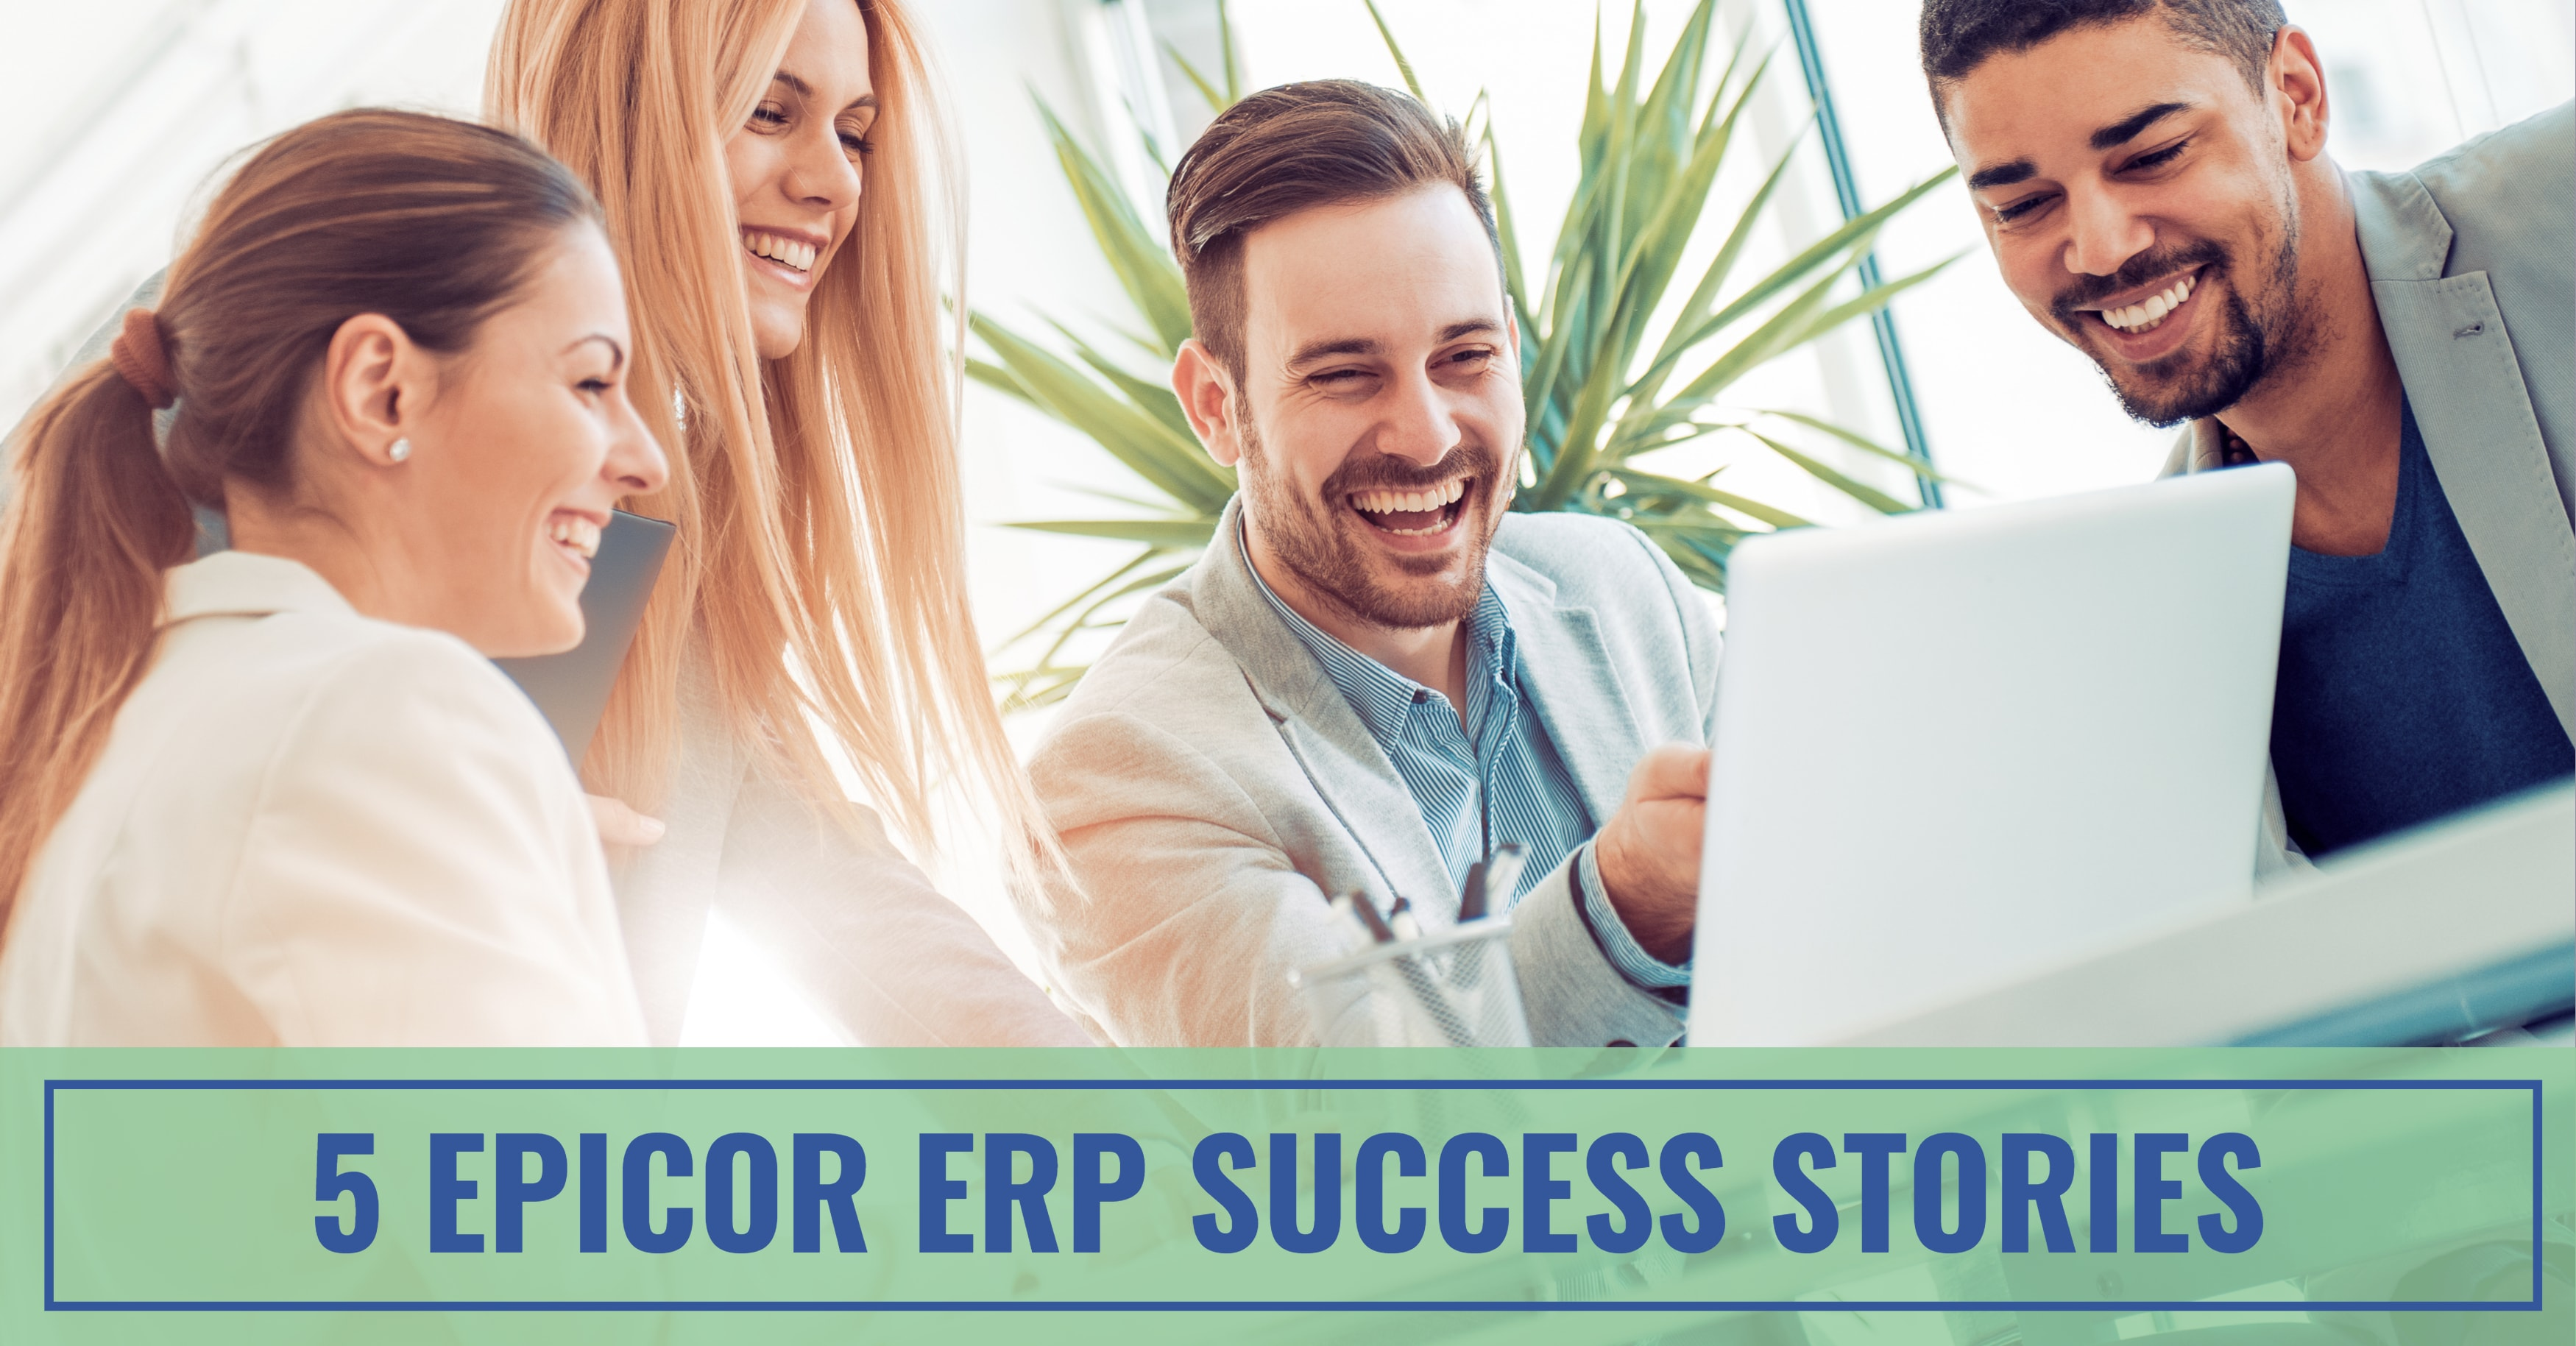 5 Epicor ERP Success Stories